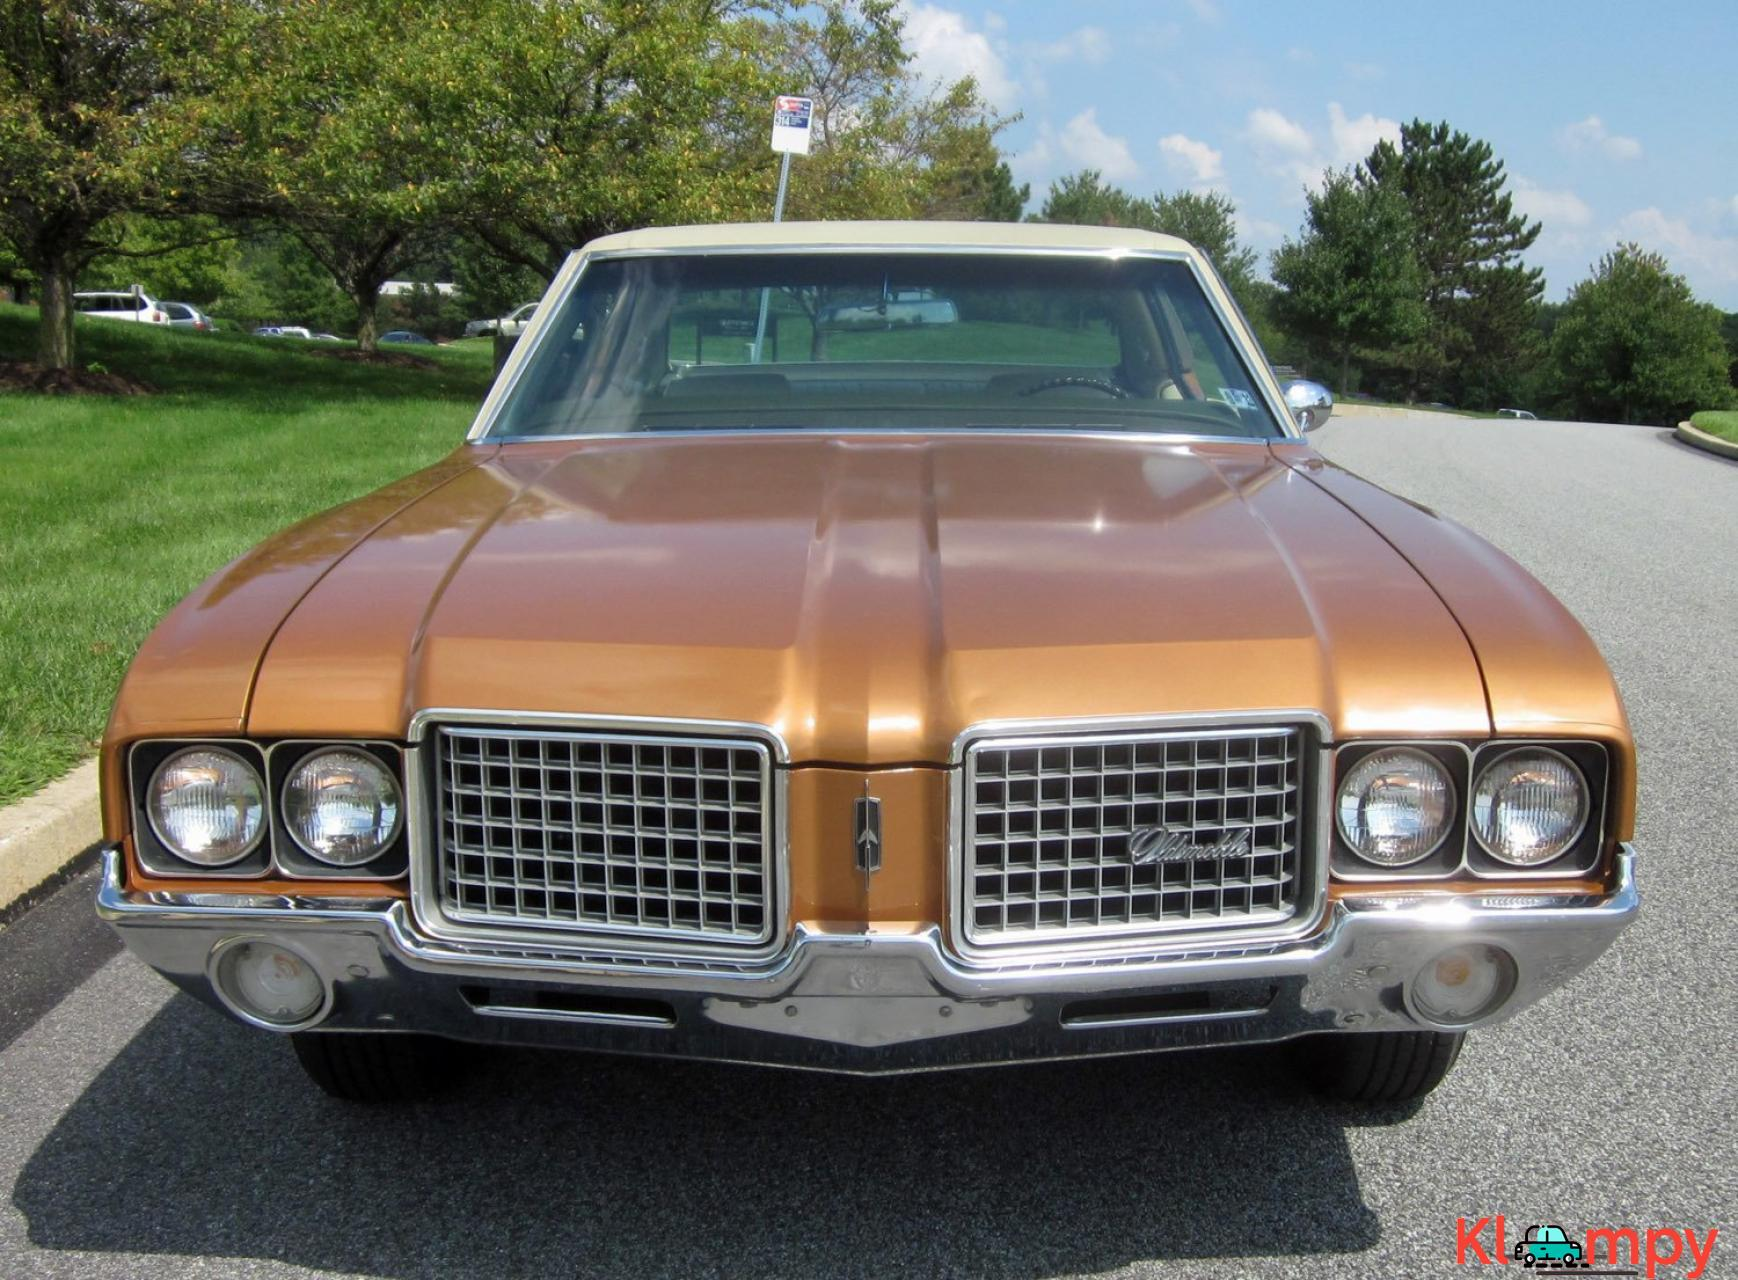 1972 Oldsmobile Cutlass Sport Sedan V8 - 4/20